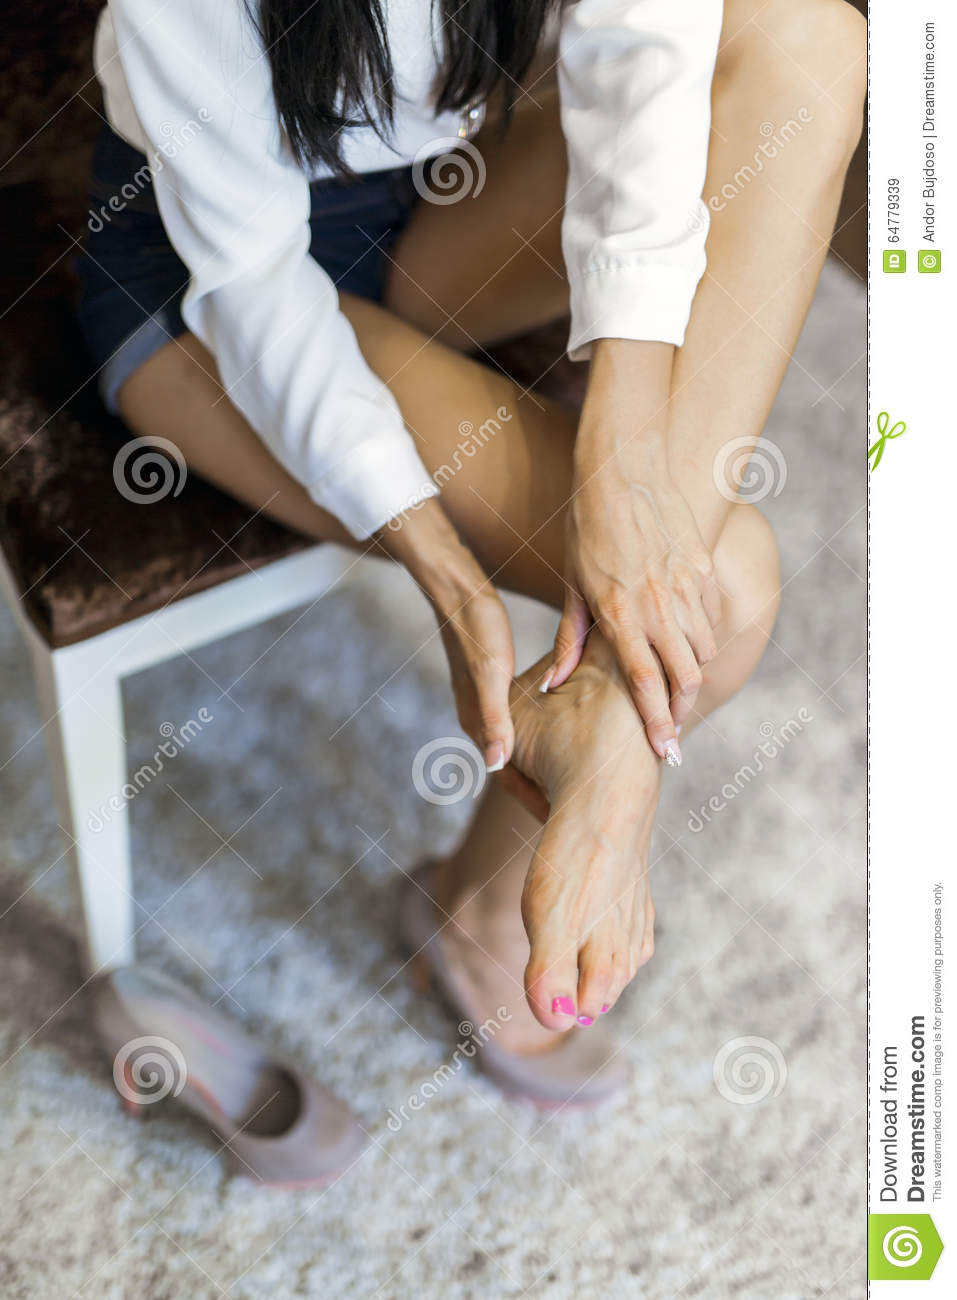 taking off shoes after a long walk can be paniful stock photo